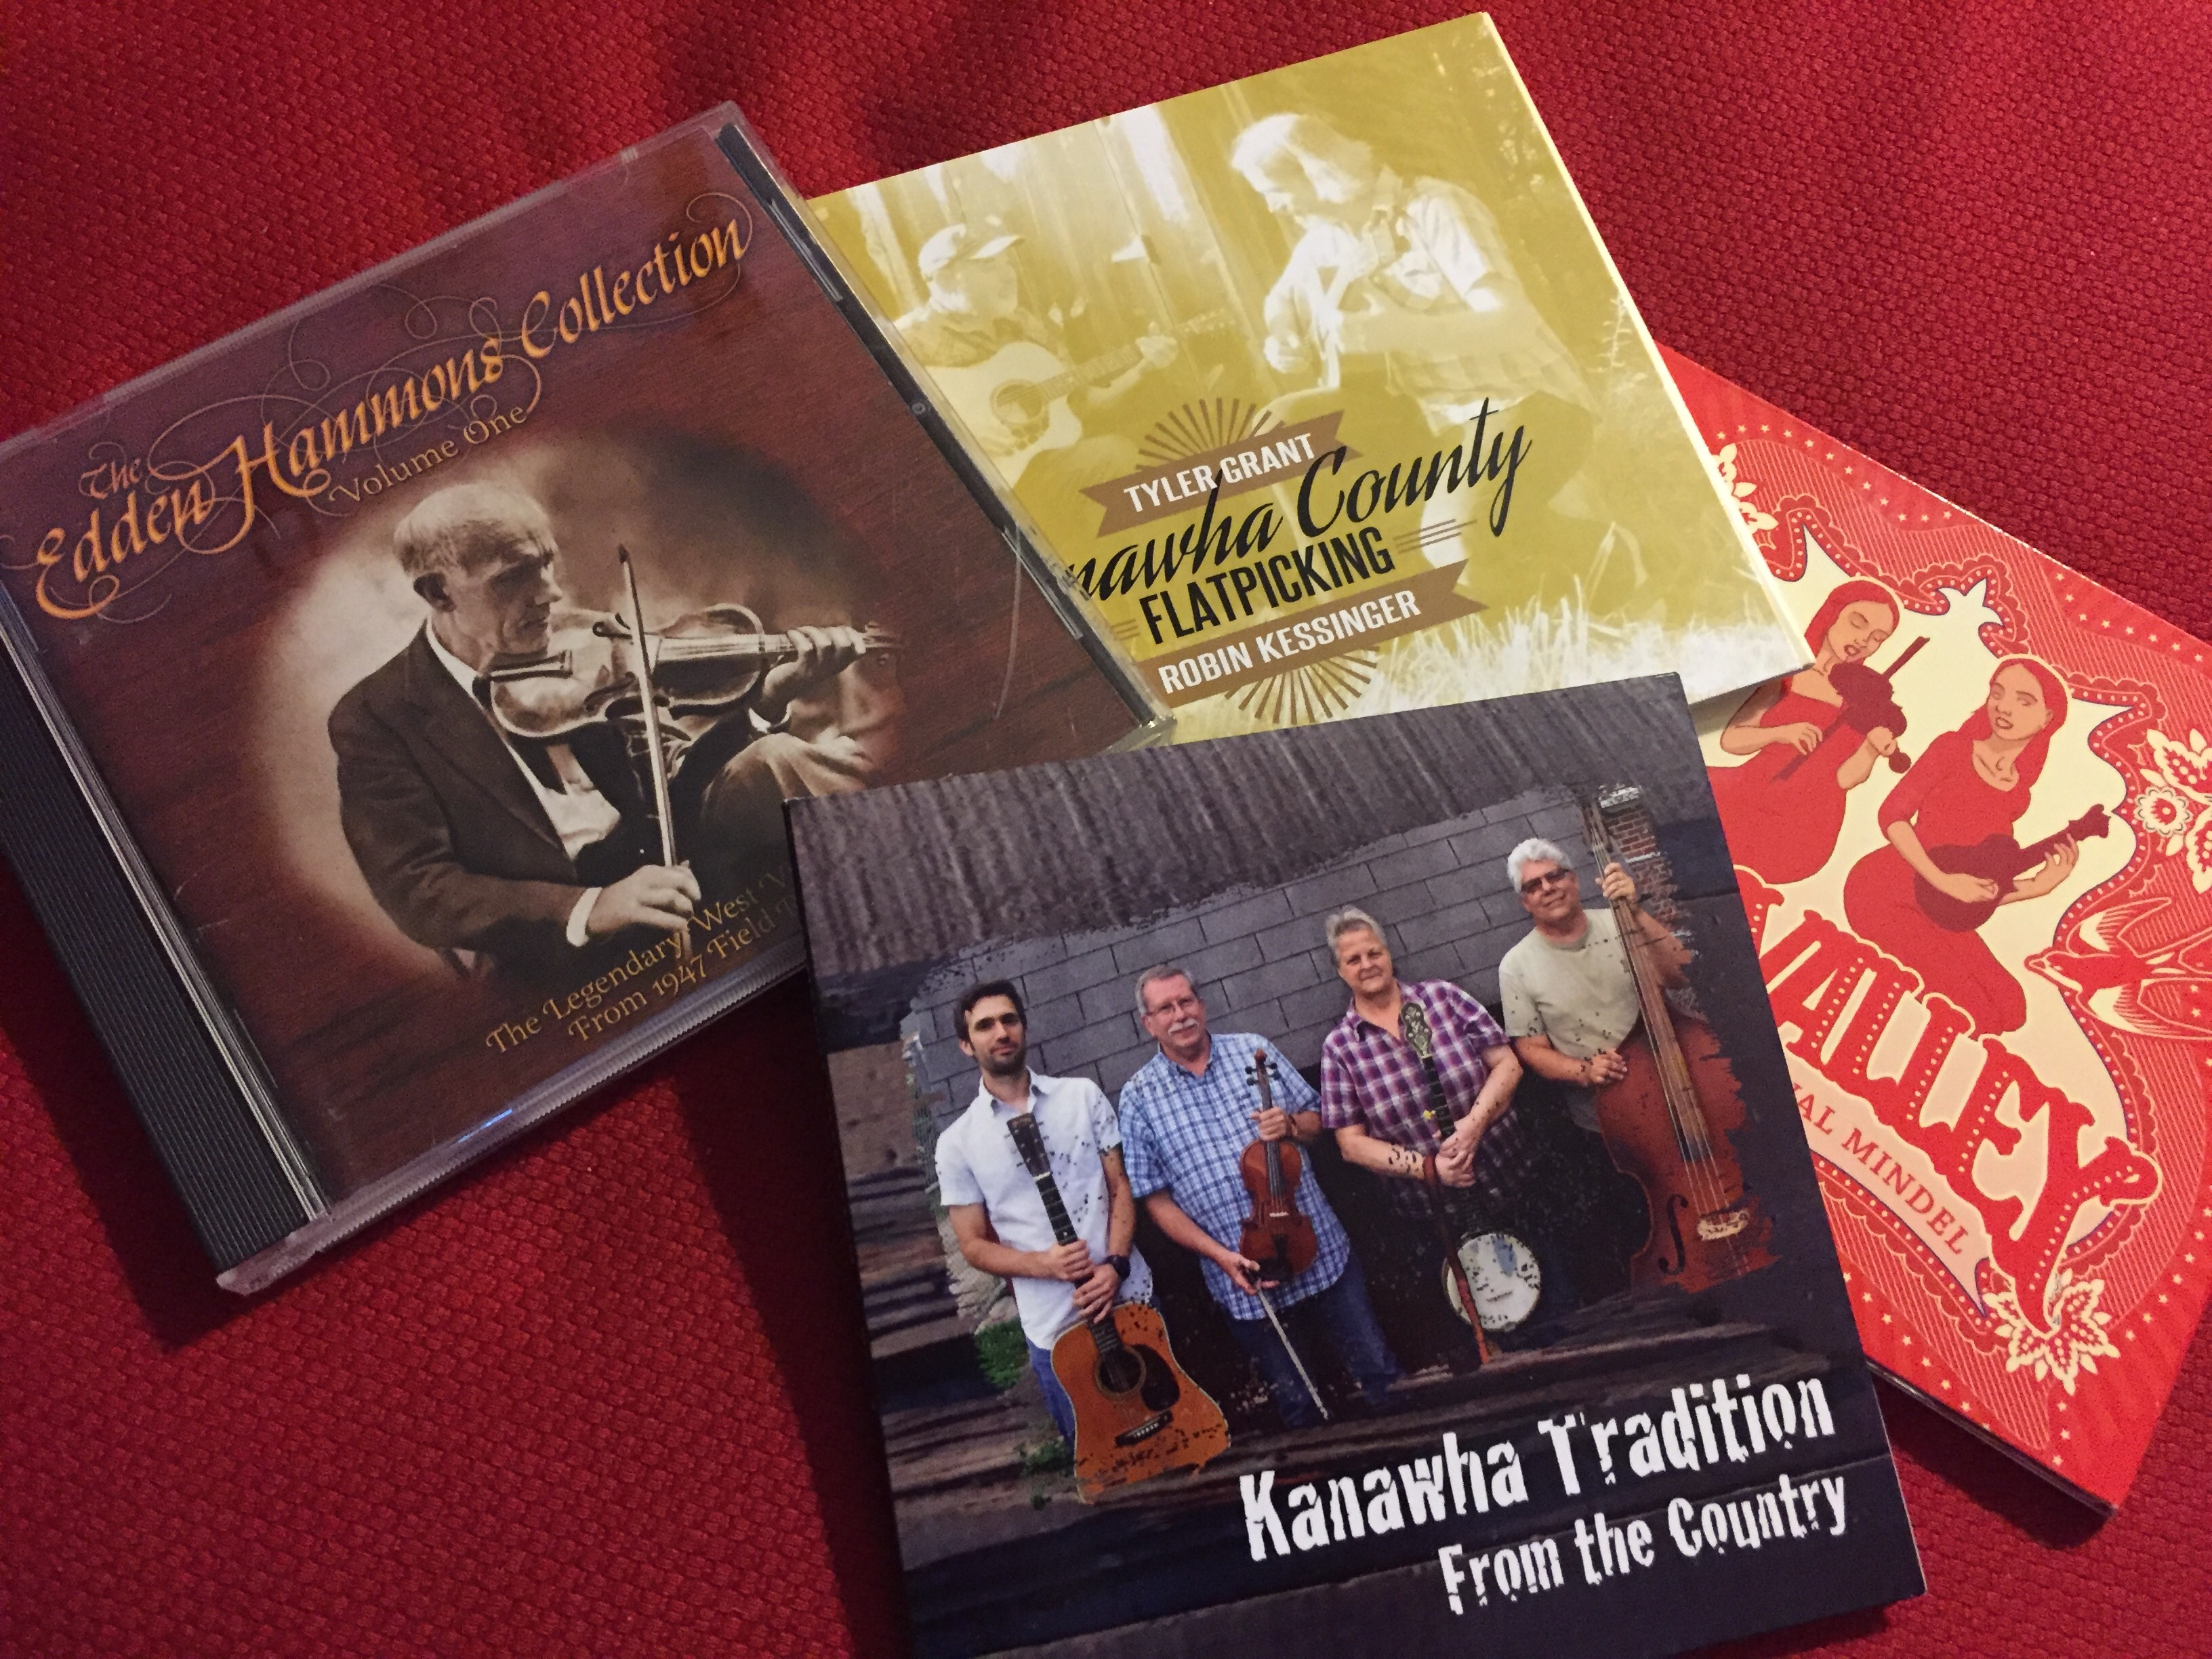 Caption: Music with West Virginia connections features in this week's show – from antique fiddle tunes to duet singing to a new flatpicking guitar album from Robin Kessinger and Tyler Grant.  , Credit: Paul Brown